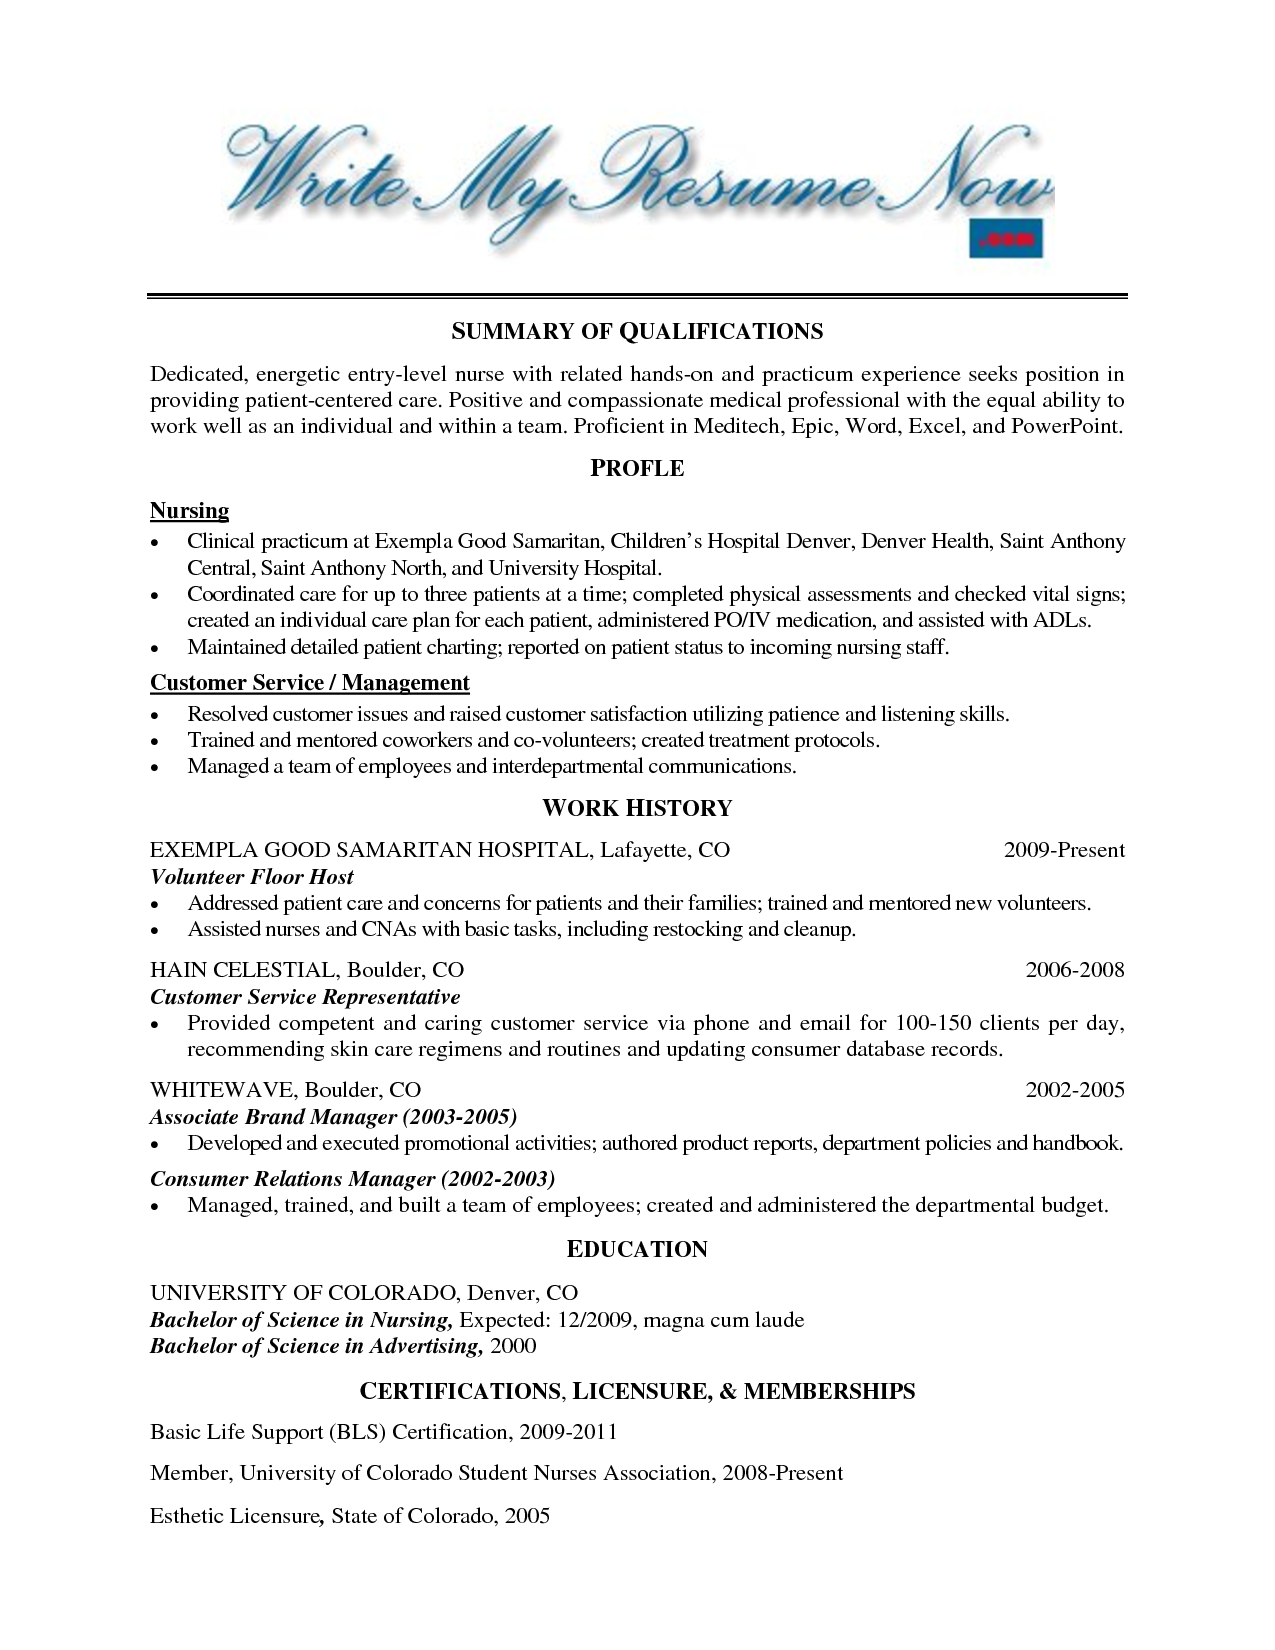 Hospital Volunteer Resume Example   Http://www.resumecareer.info/hospital  Volunteer Resume Example 12/